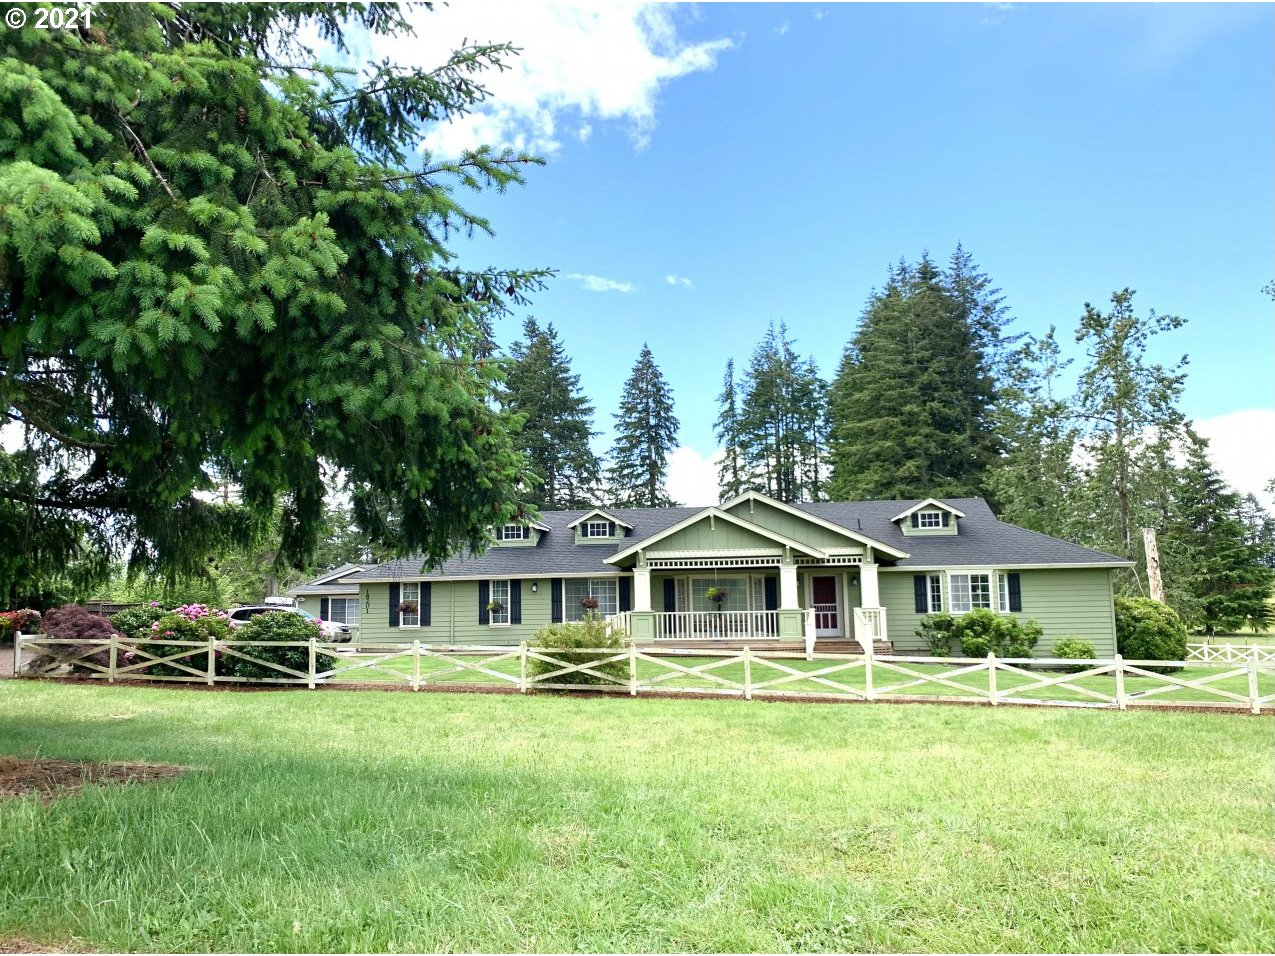 Custom ranch on 3 acres. Attached 2 car garage with tandem storage room. 22x23 shop with concrete slab 3 more outbuildings. Well maintained with records. Newer 40 yr roof, new AC & furnace. 2 water heaters. On septic. Sprinkler system, expansive deck. Master bedroom with large walk-in closet & en-suite bathroom, 2nd master with walk-in closet with adjoining bathroom, den could be converted to 3rd bedroom.